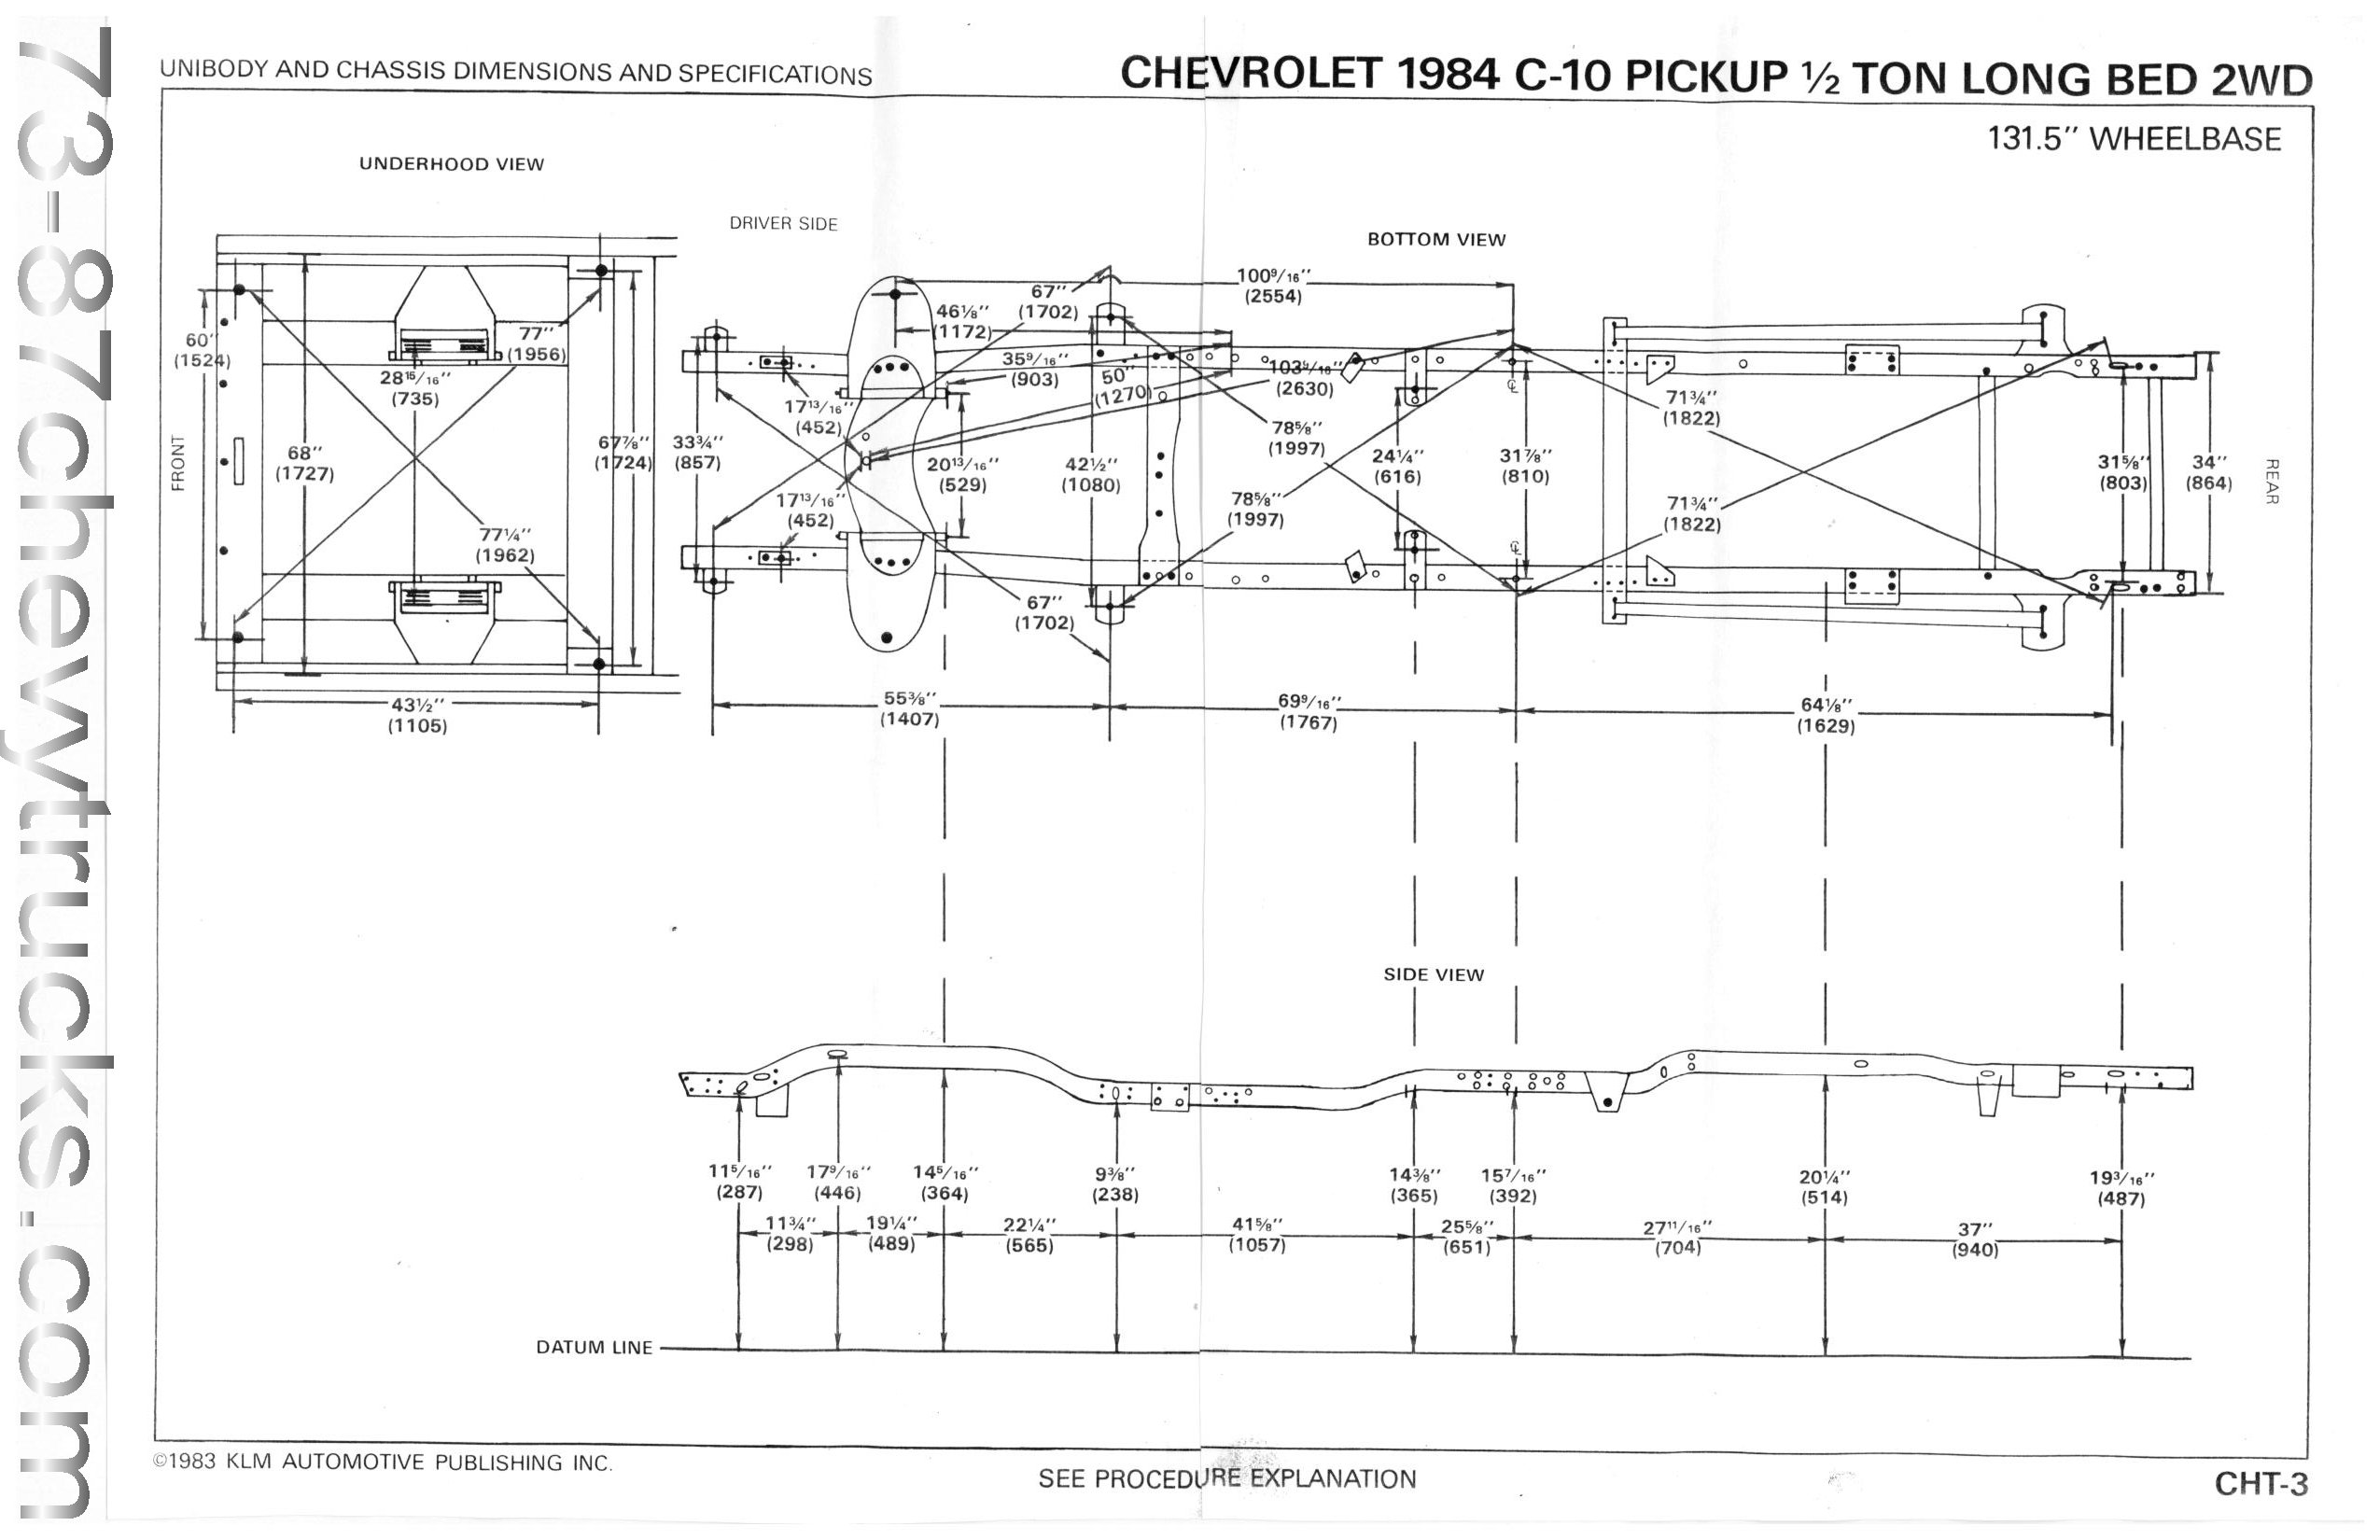 1999 Silverado Wiring Harness Frame Schematics Diagram Ford F 150 Trailer Connector 87 Caprice Fuse Box Auto Electrical 2004